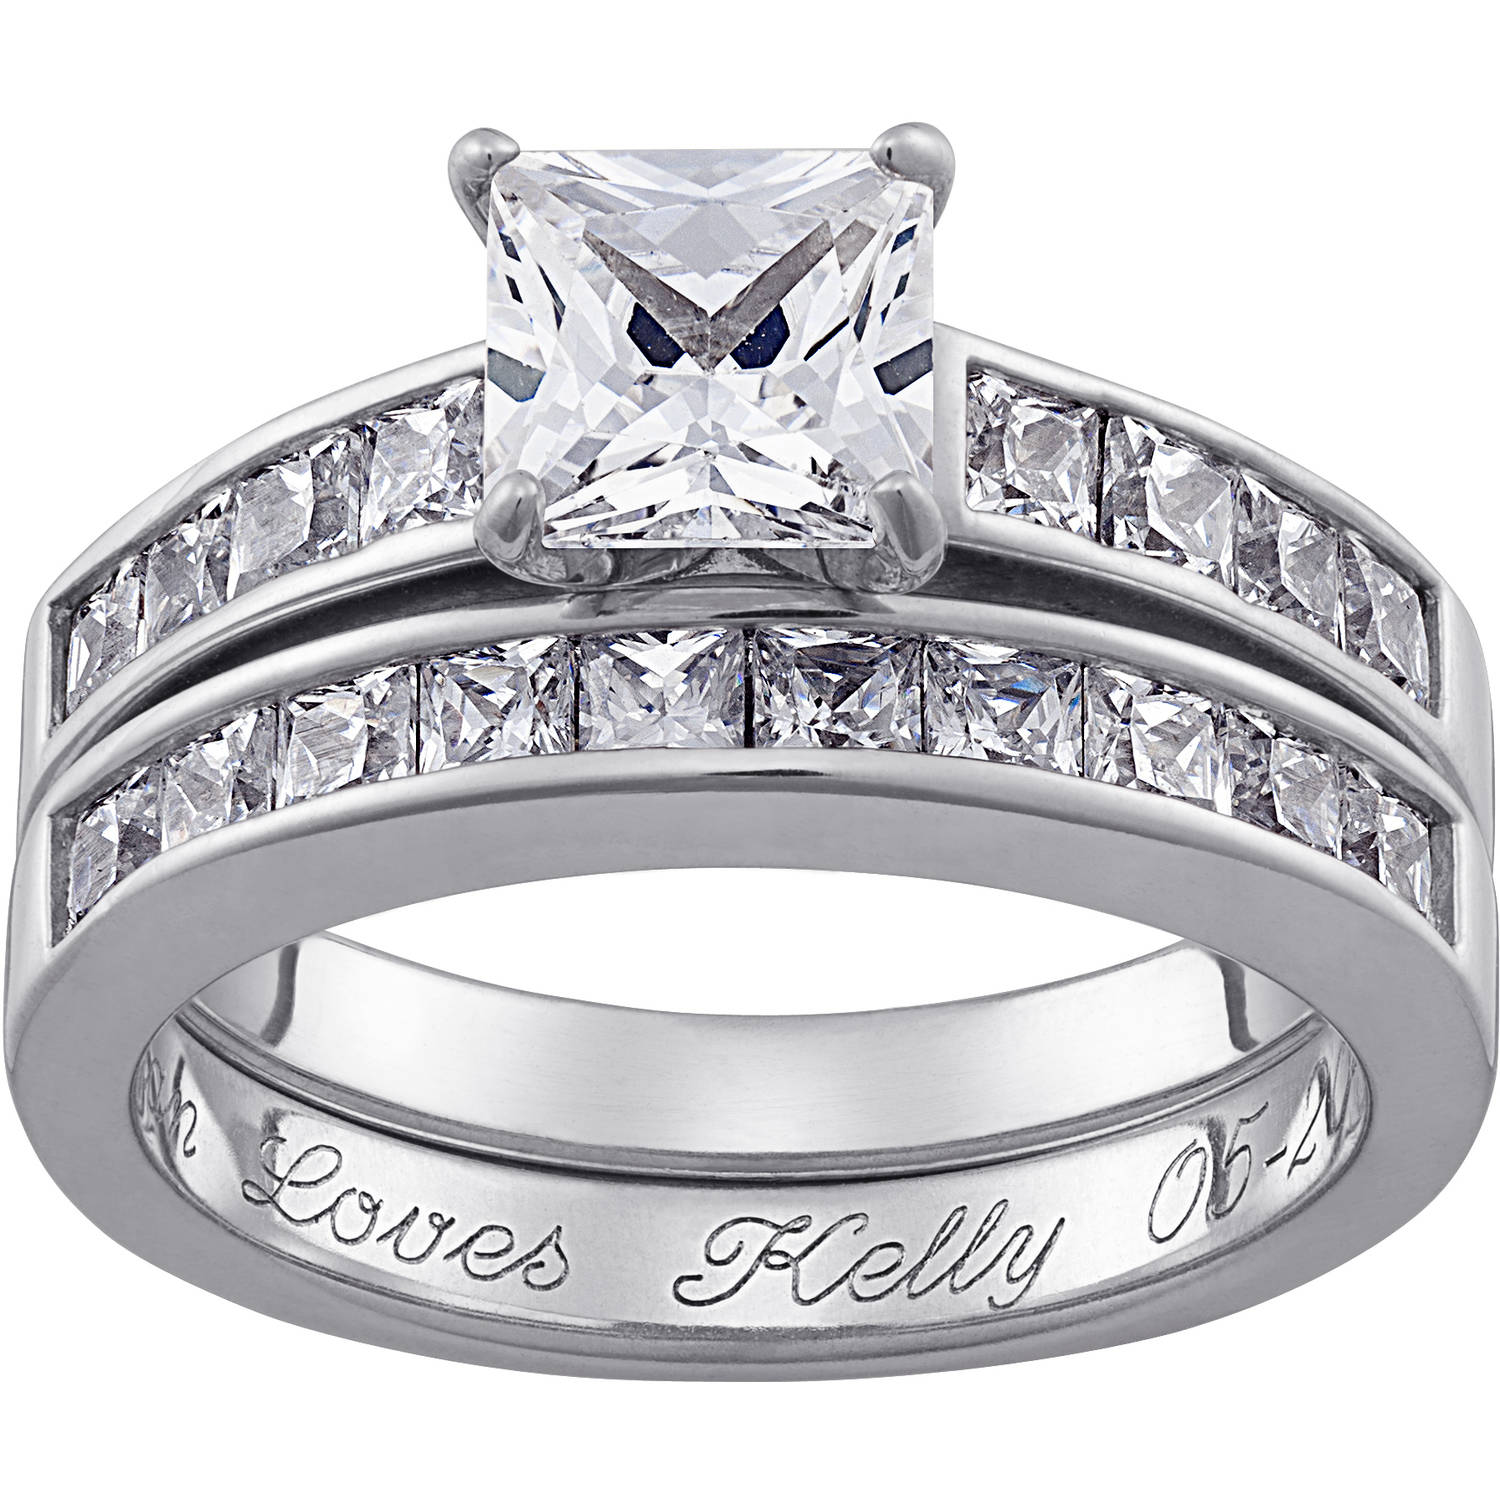 Personalized Square CZ Two Piece Engraved Wedding Ring Set in